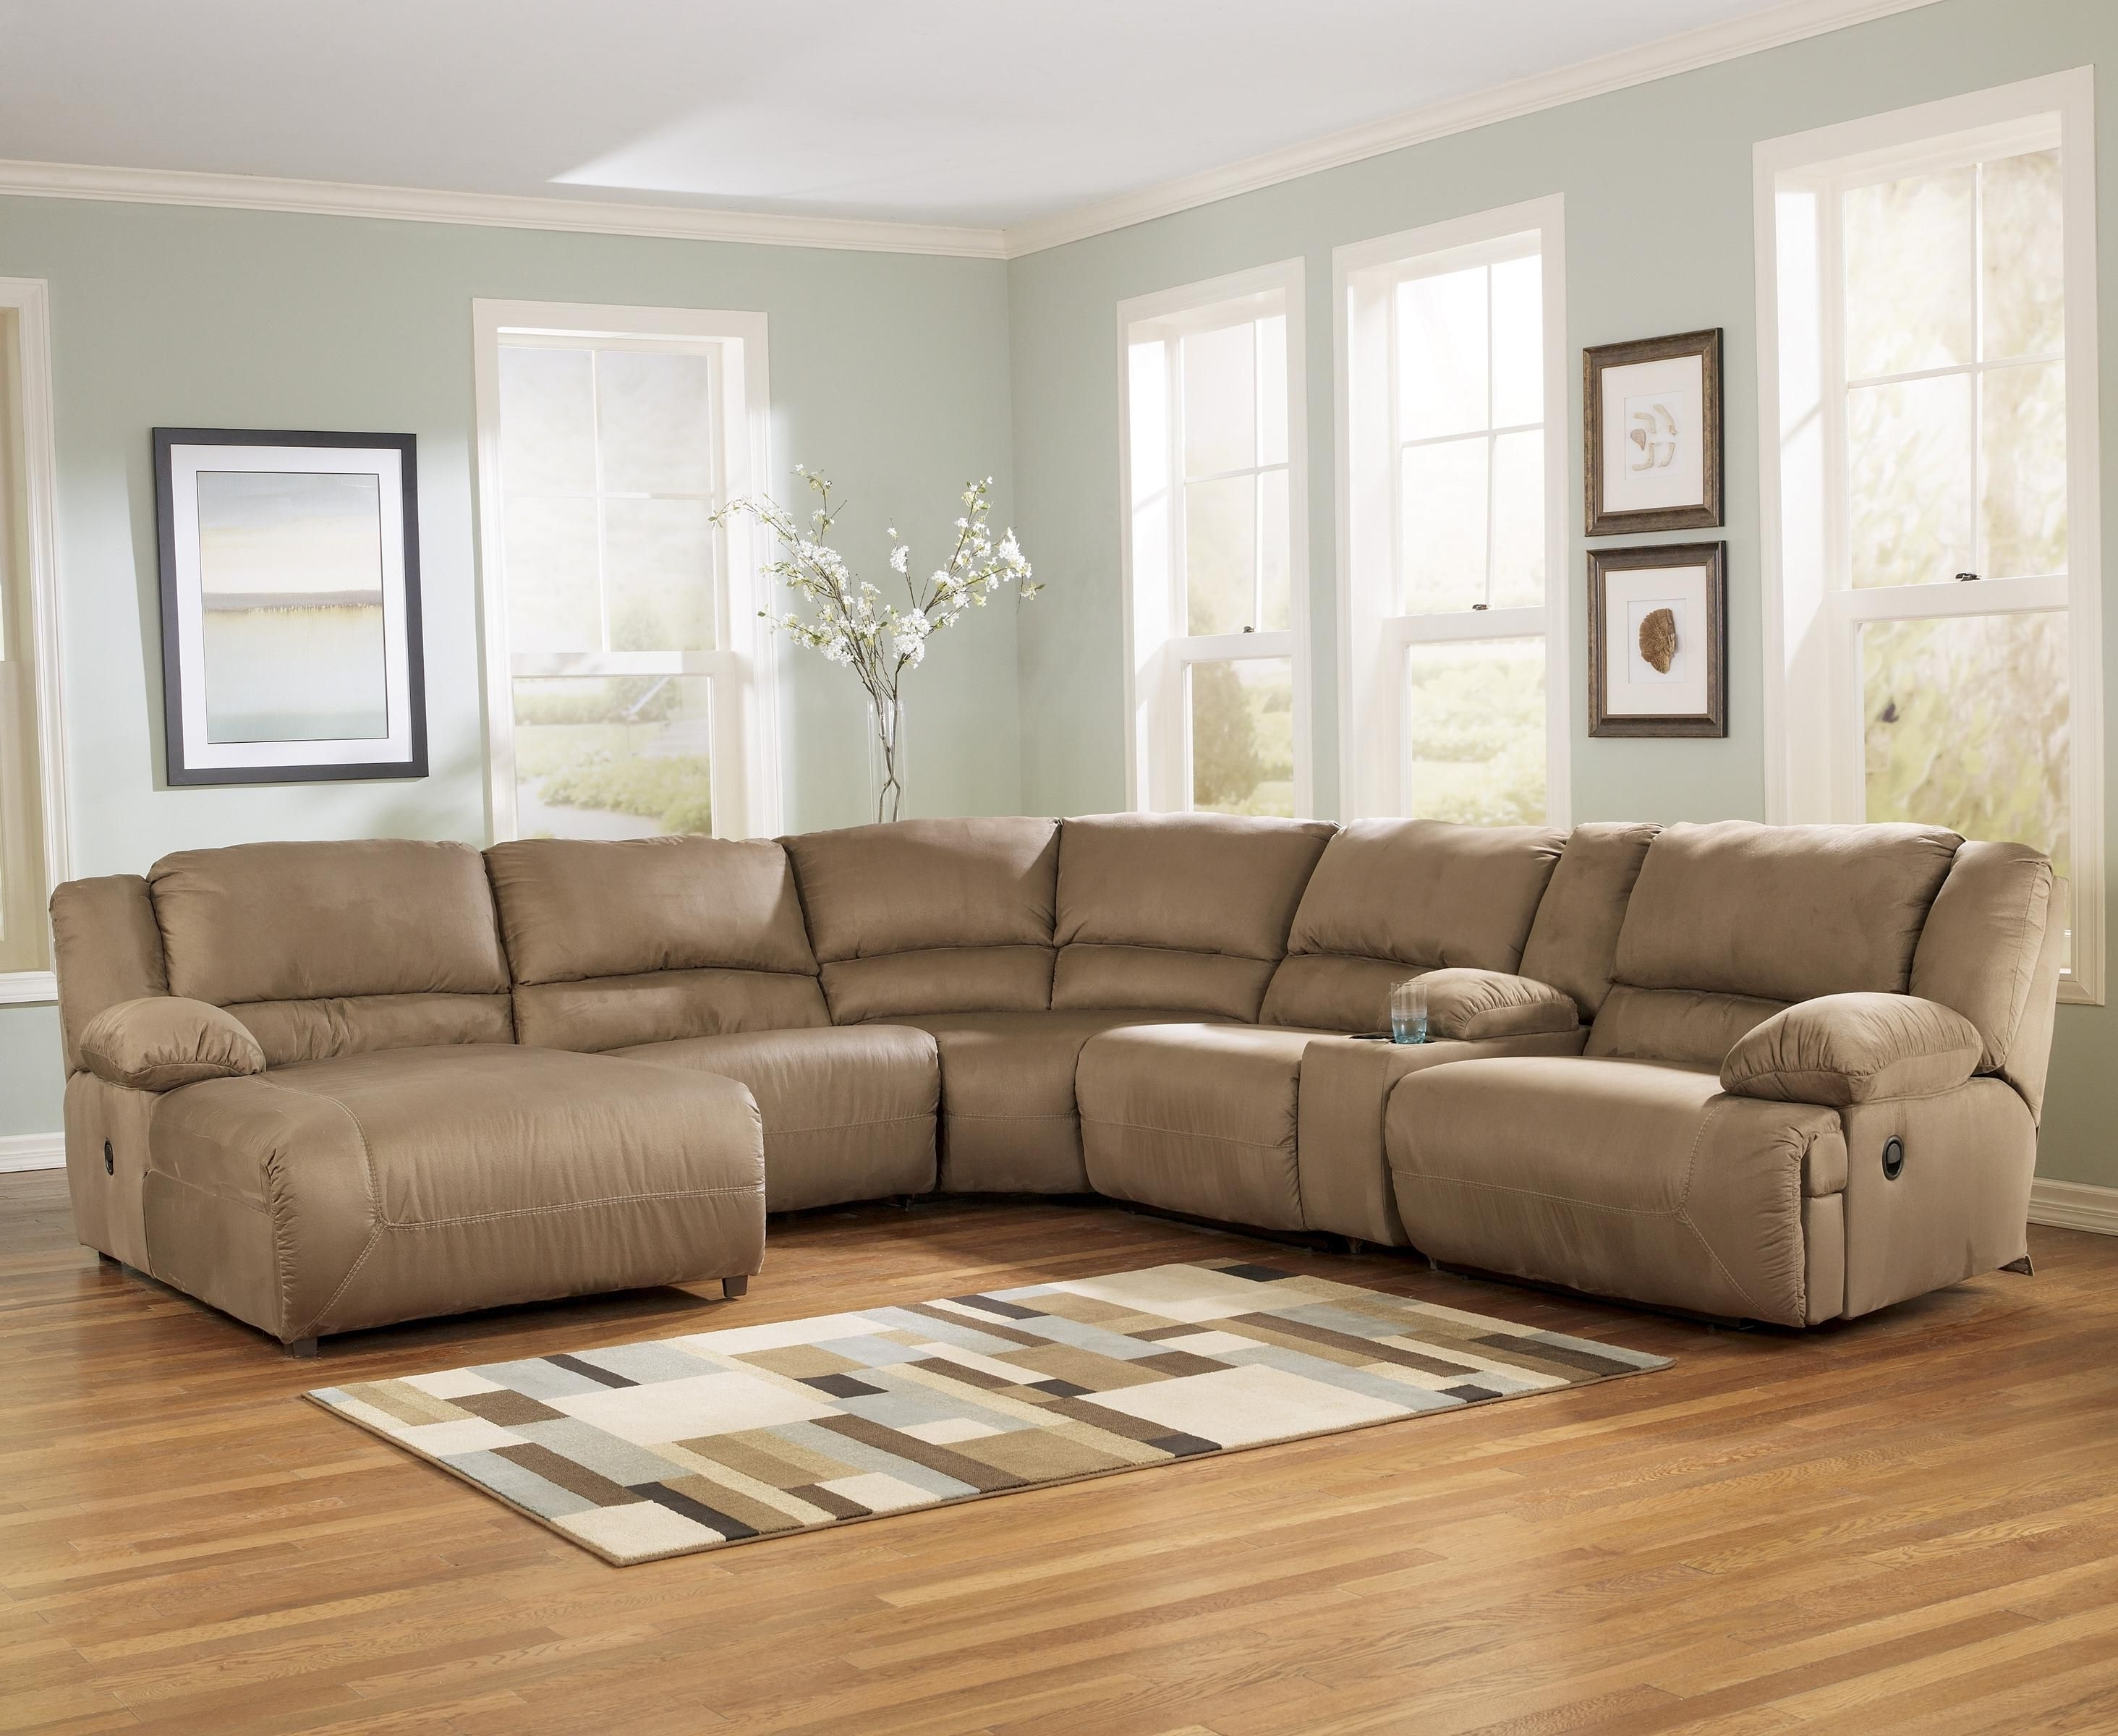 Widely Used Hogan – Mocha 6 Piece Motion Sectional With Right Chaise And With Harrisburg Pa Sectional Sofas (View 19 of 20)